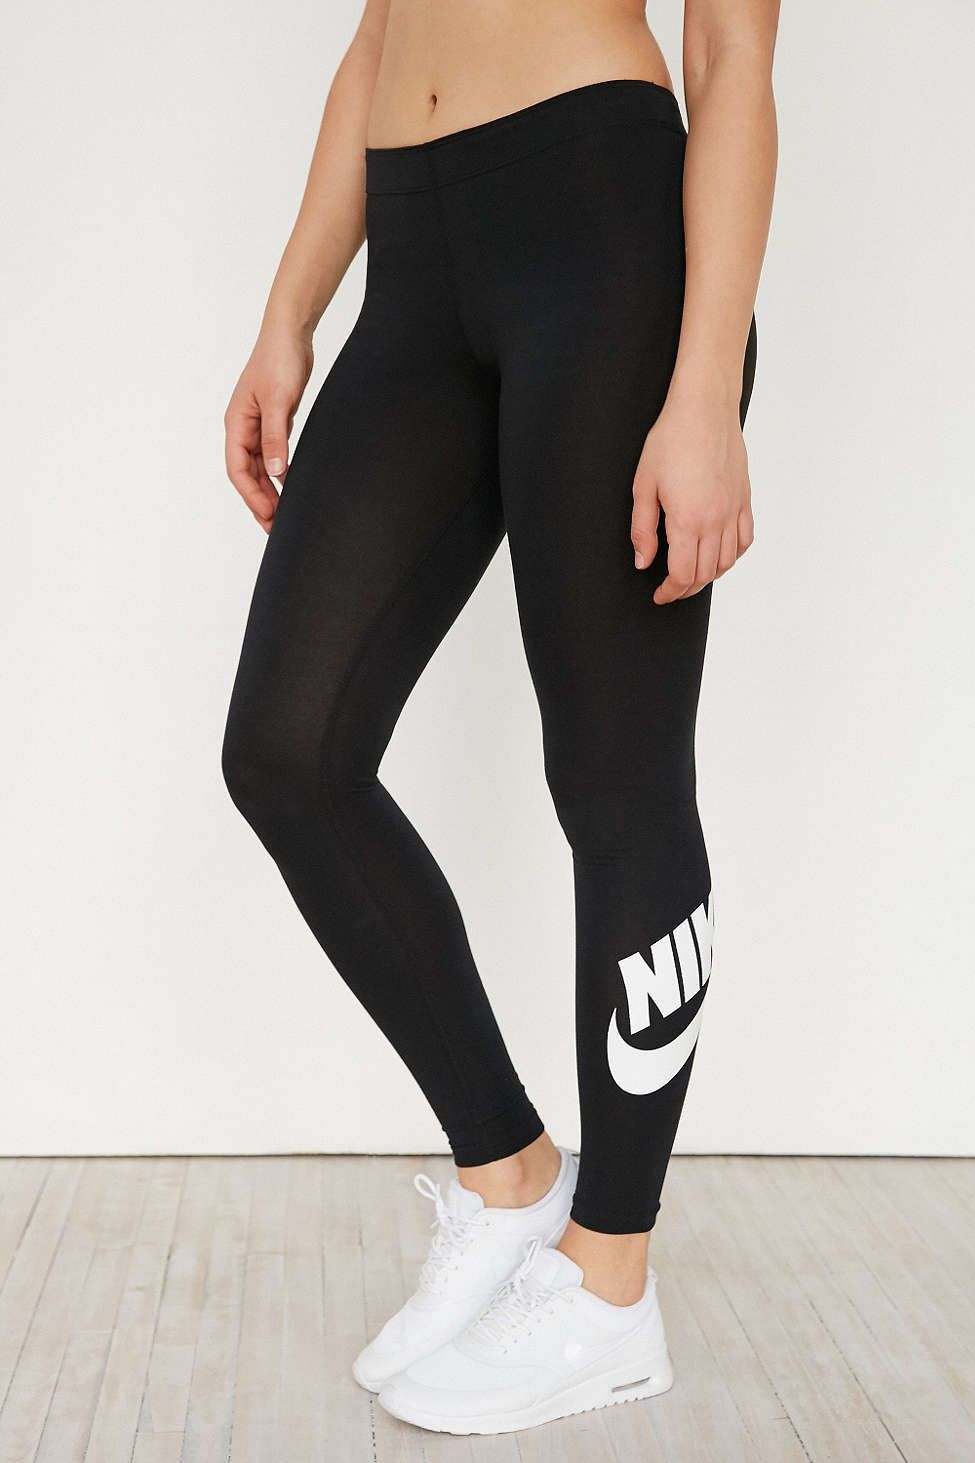 Fitness Women s Clothes - Nike Leg-A-See Logo Legging - Urban Outfitters -  nike womens clothing 0a6d5fc158c